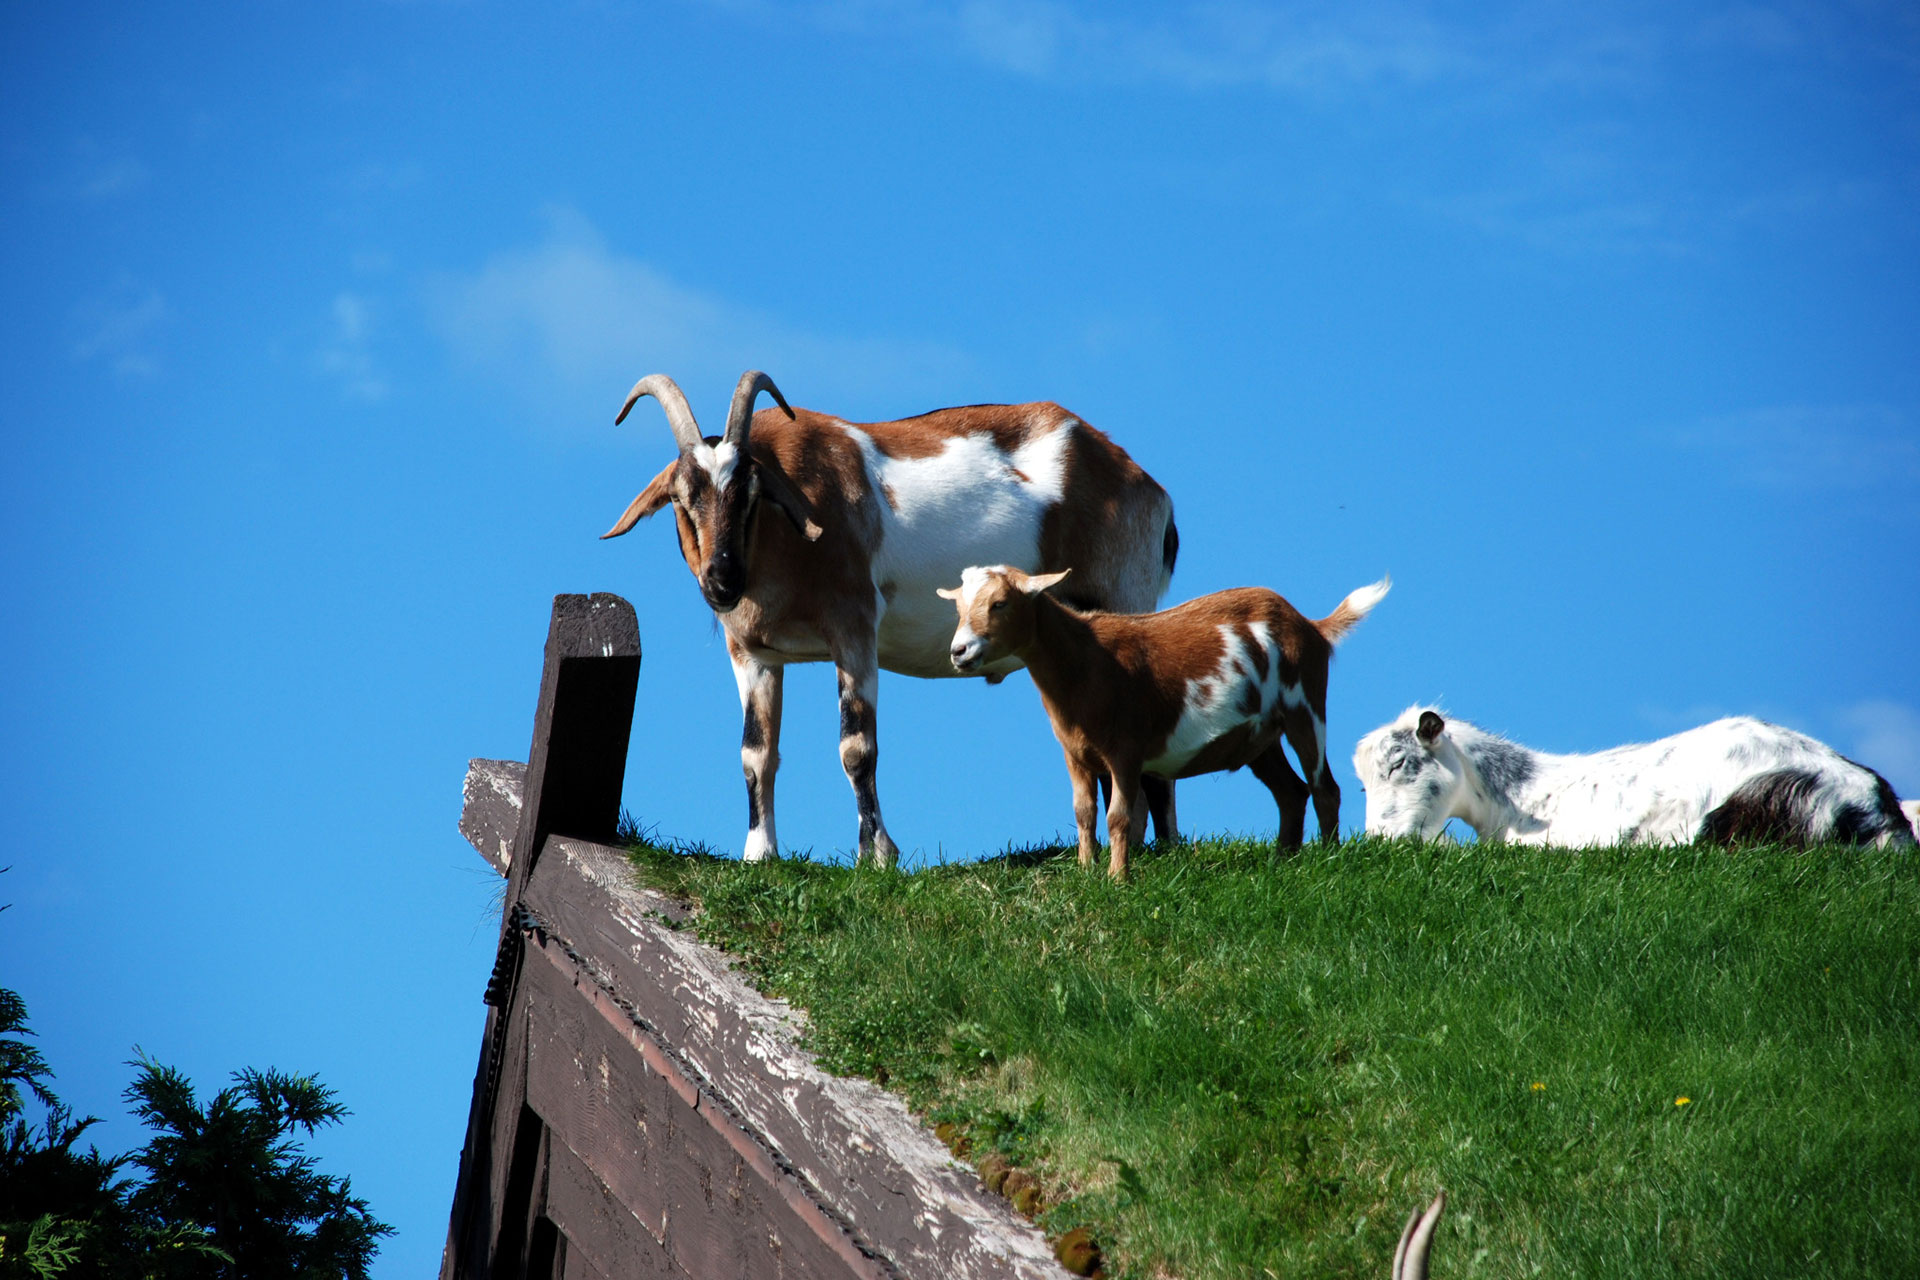 Goats on the Roof at Al Johnson's Swedish Restaurant; Courtesy of Door County Visitor Bureau